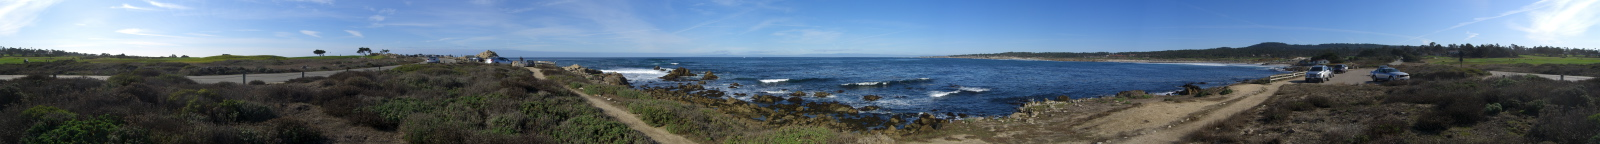 Spanish Bay Panorama